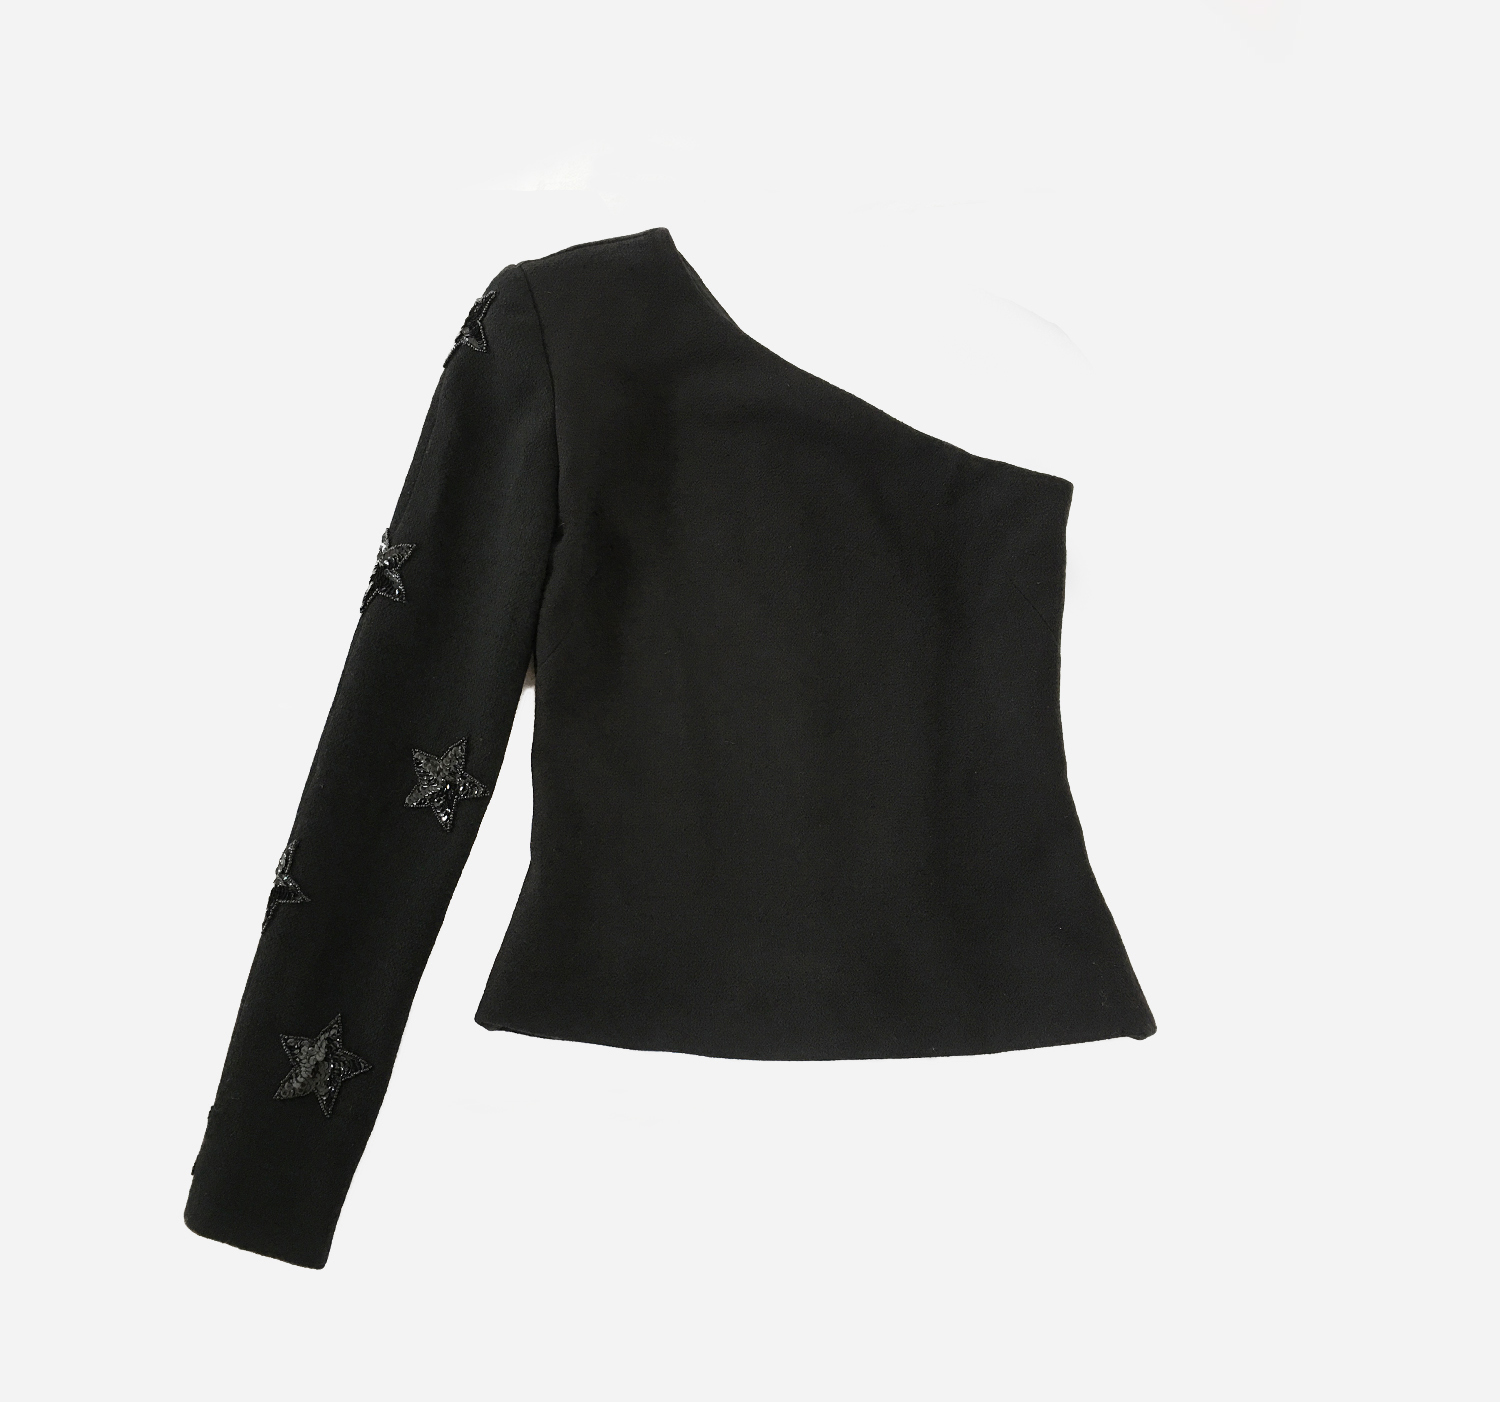 Open Shoulder Top - VERA DE NERO's Open Shoulder top is a staple item for your wardrobe this season.